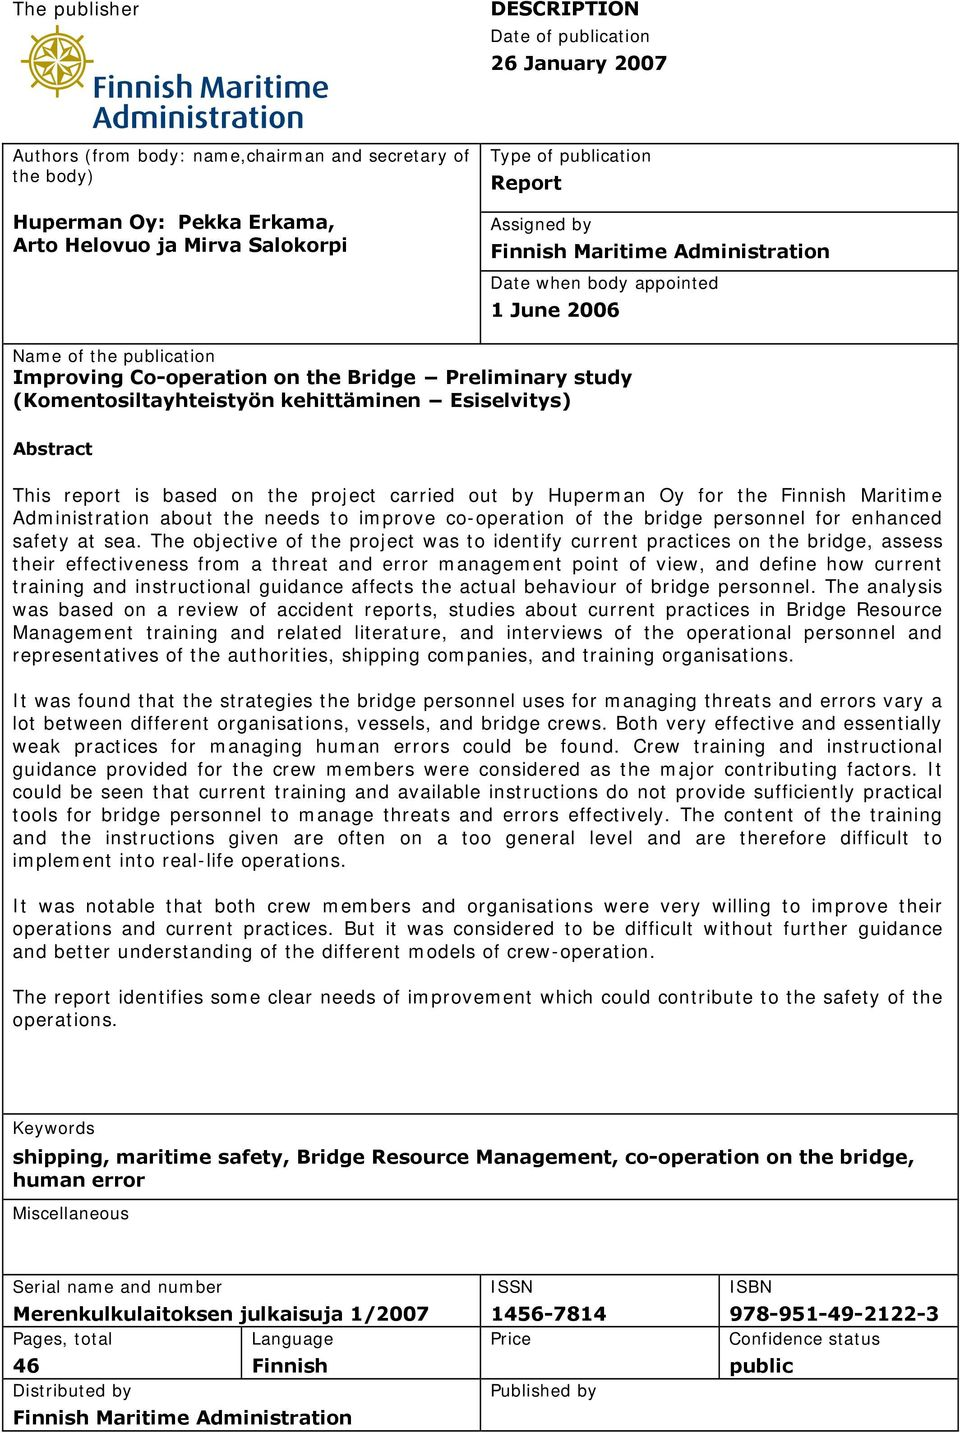 Abstract This report is based on the project carried out by Huperman Oy for the Finnish Maritime Administration about the needs to improve co-operation of the bridge personnel for enhanced safety at